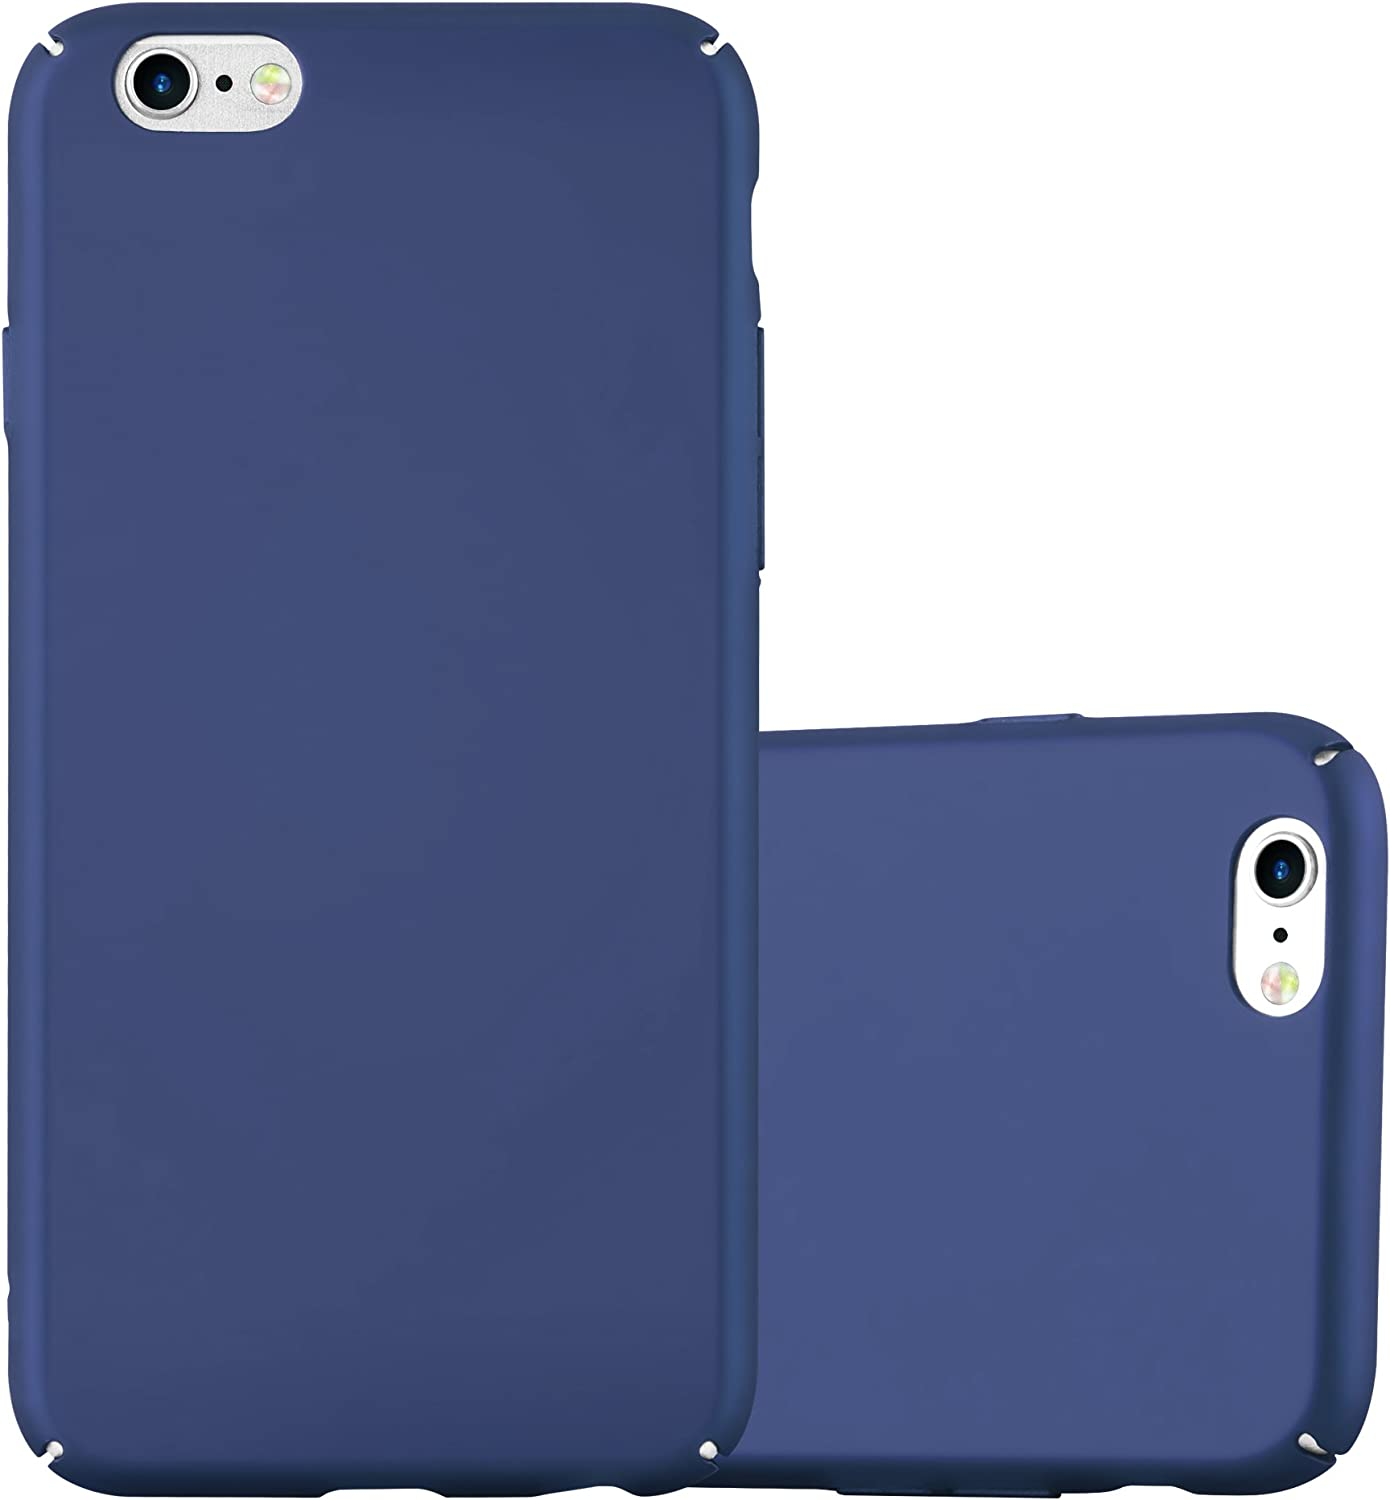 Cadorabo Case Compatible with Apple iPhone 6 Plus/iPhone 6S Plus in Metal Blue - Shockproof and Scratch Resistent Plastic Hard Cover - Ultra Slim Protective Shell Bumper Back Skin